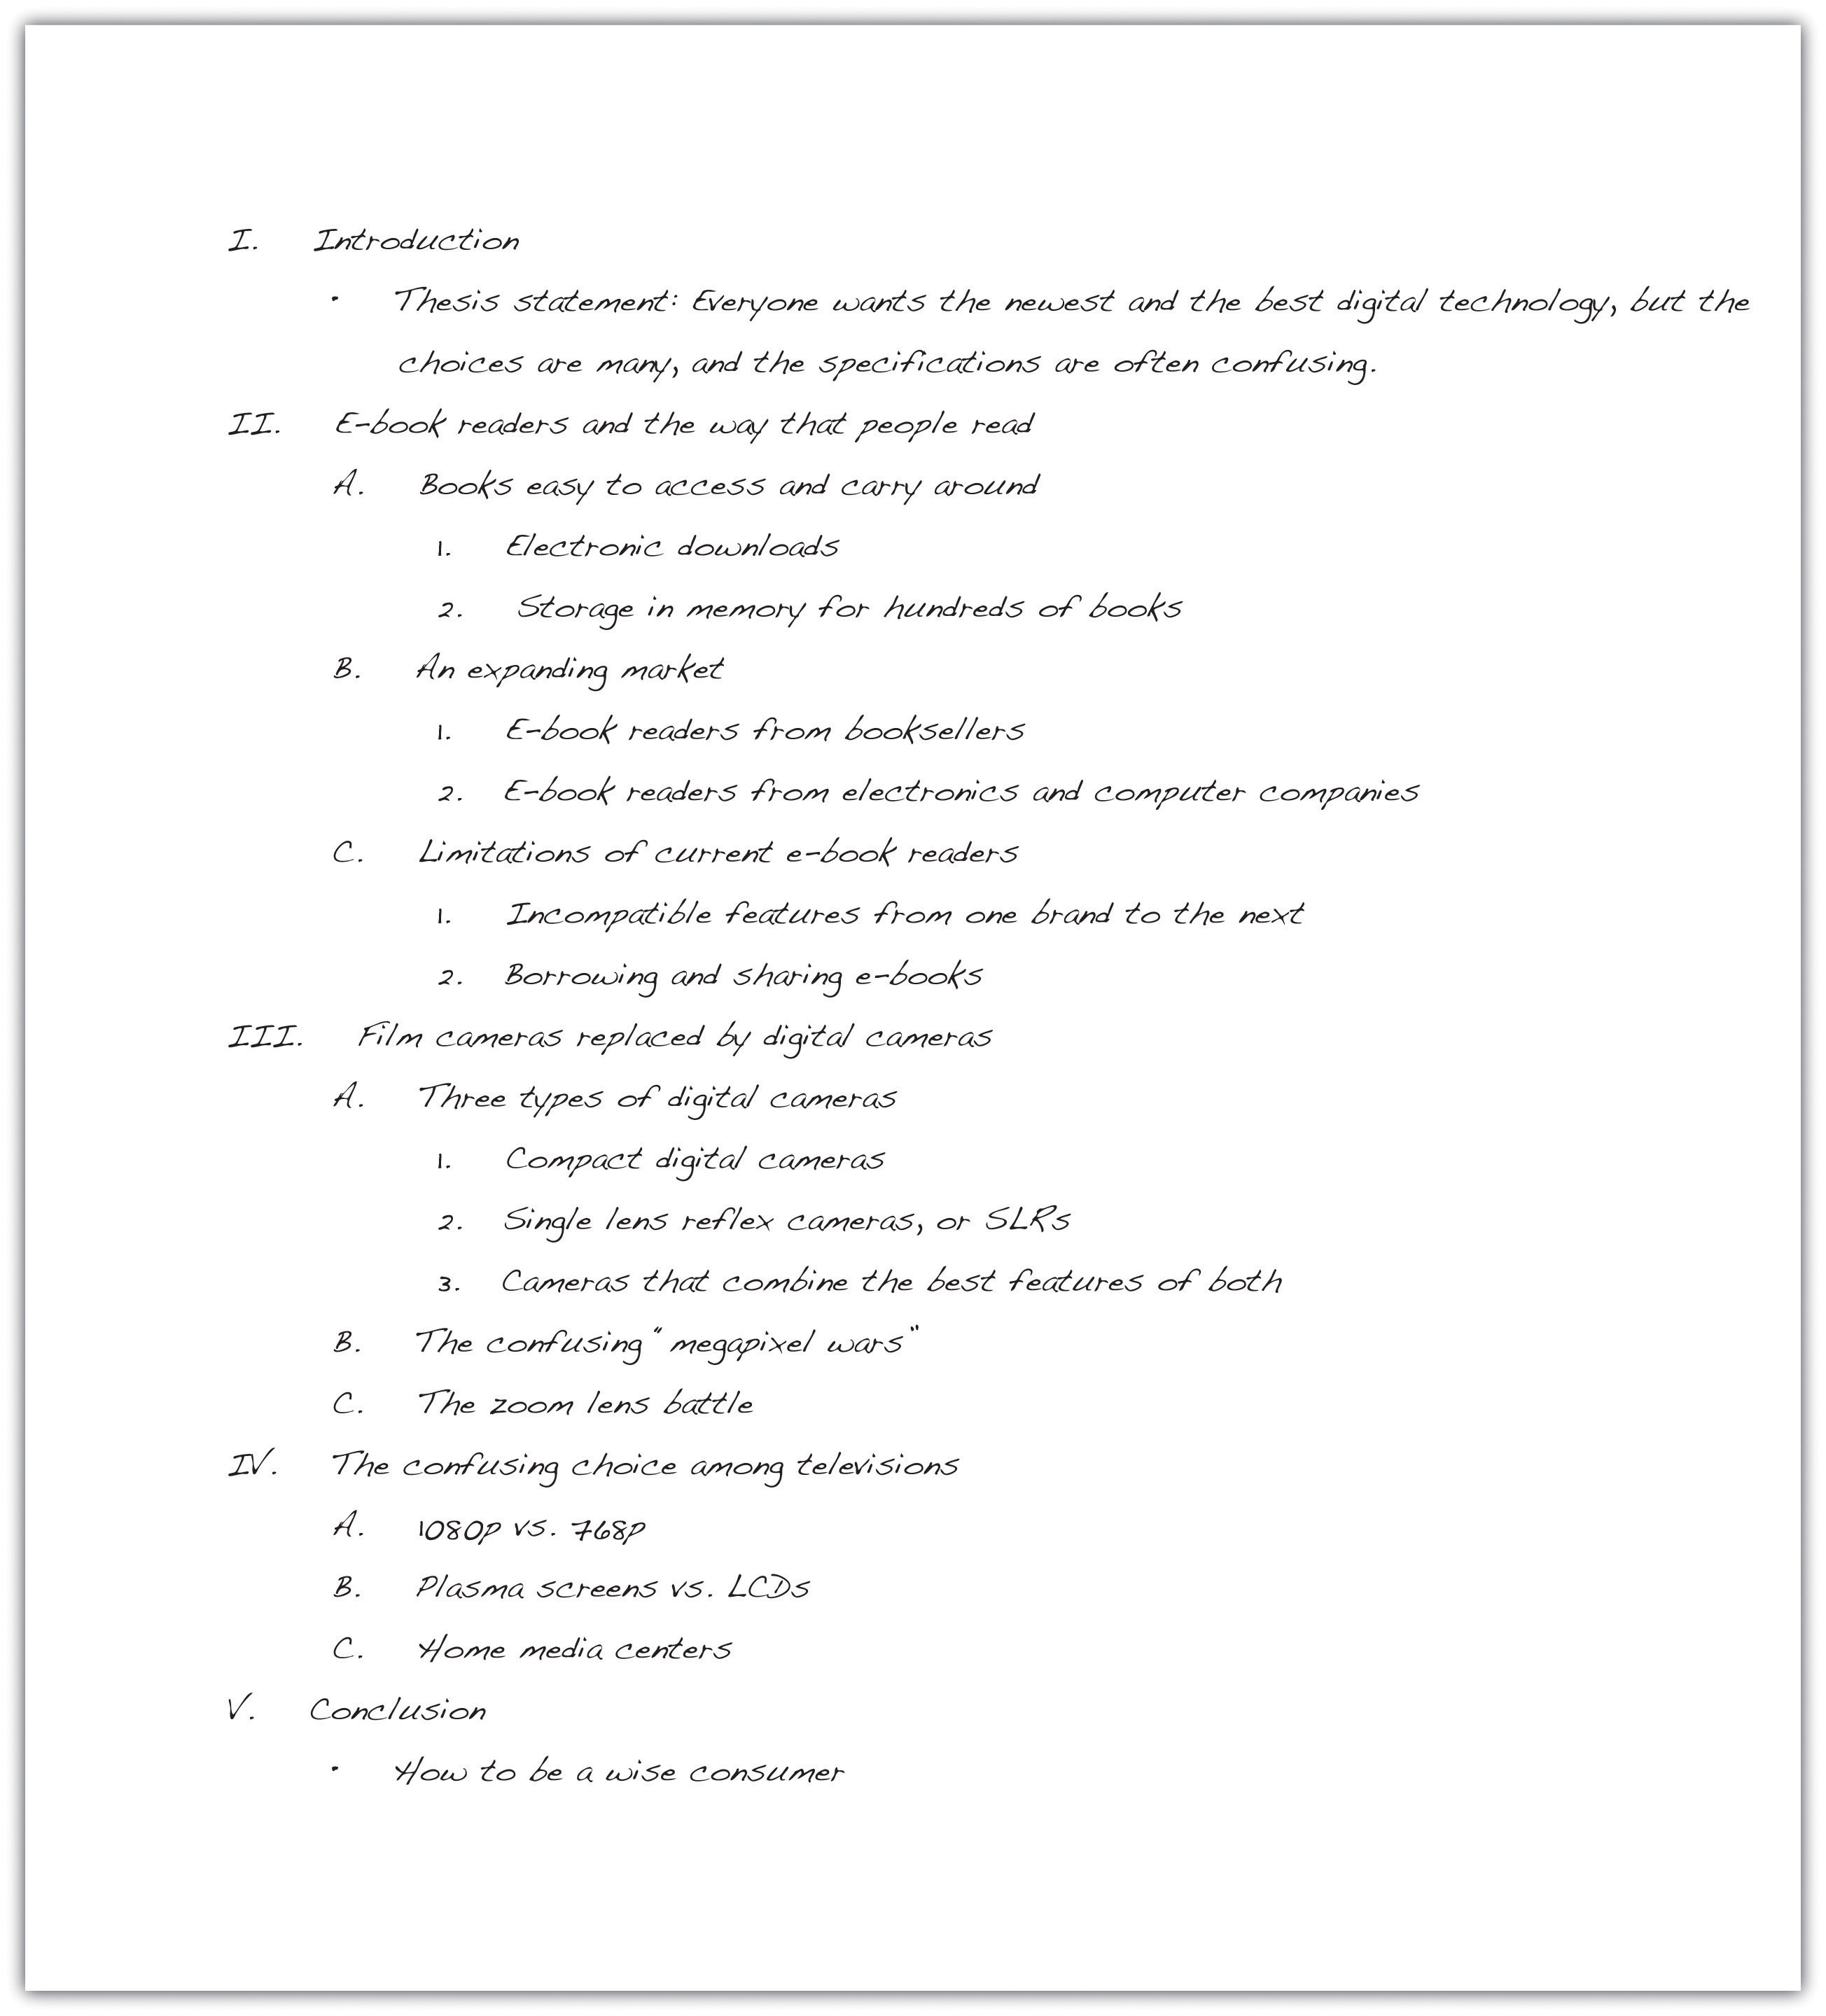 008 Outlining An Essay Best Exercise Outline Of Argumentative Classical Pattern Full